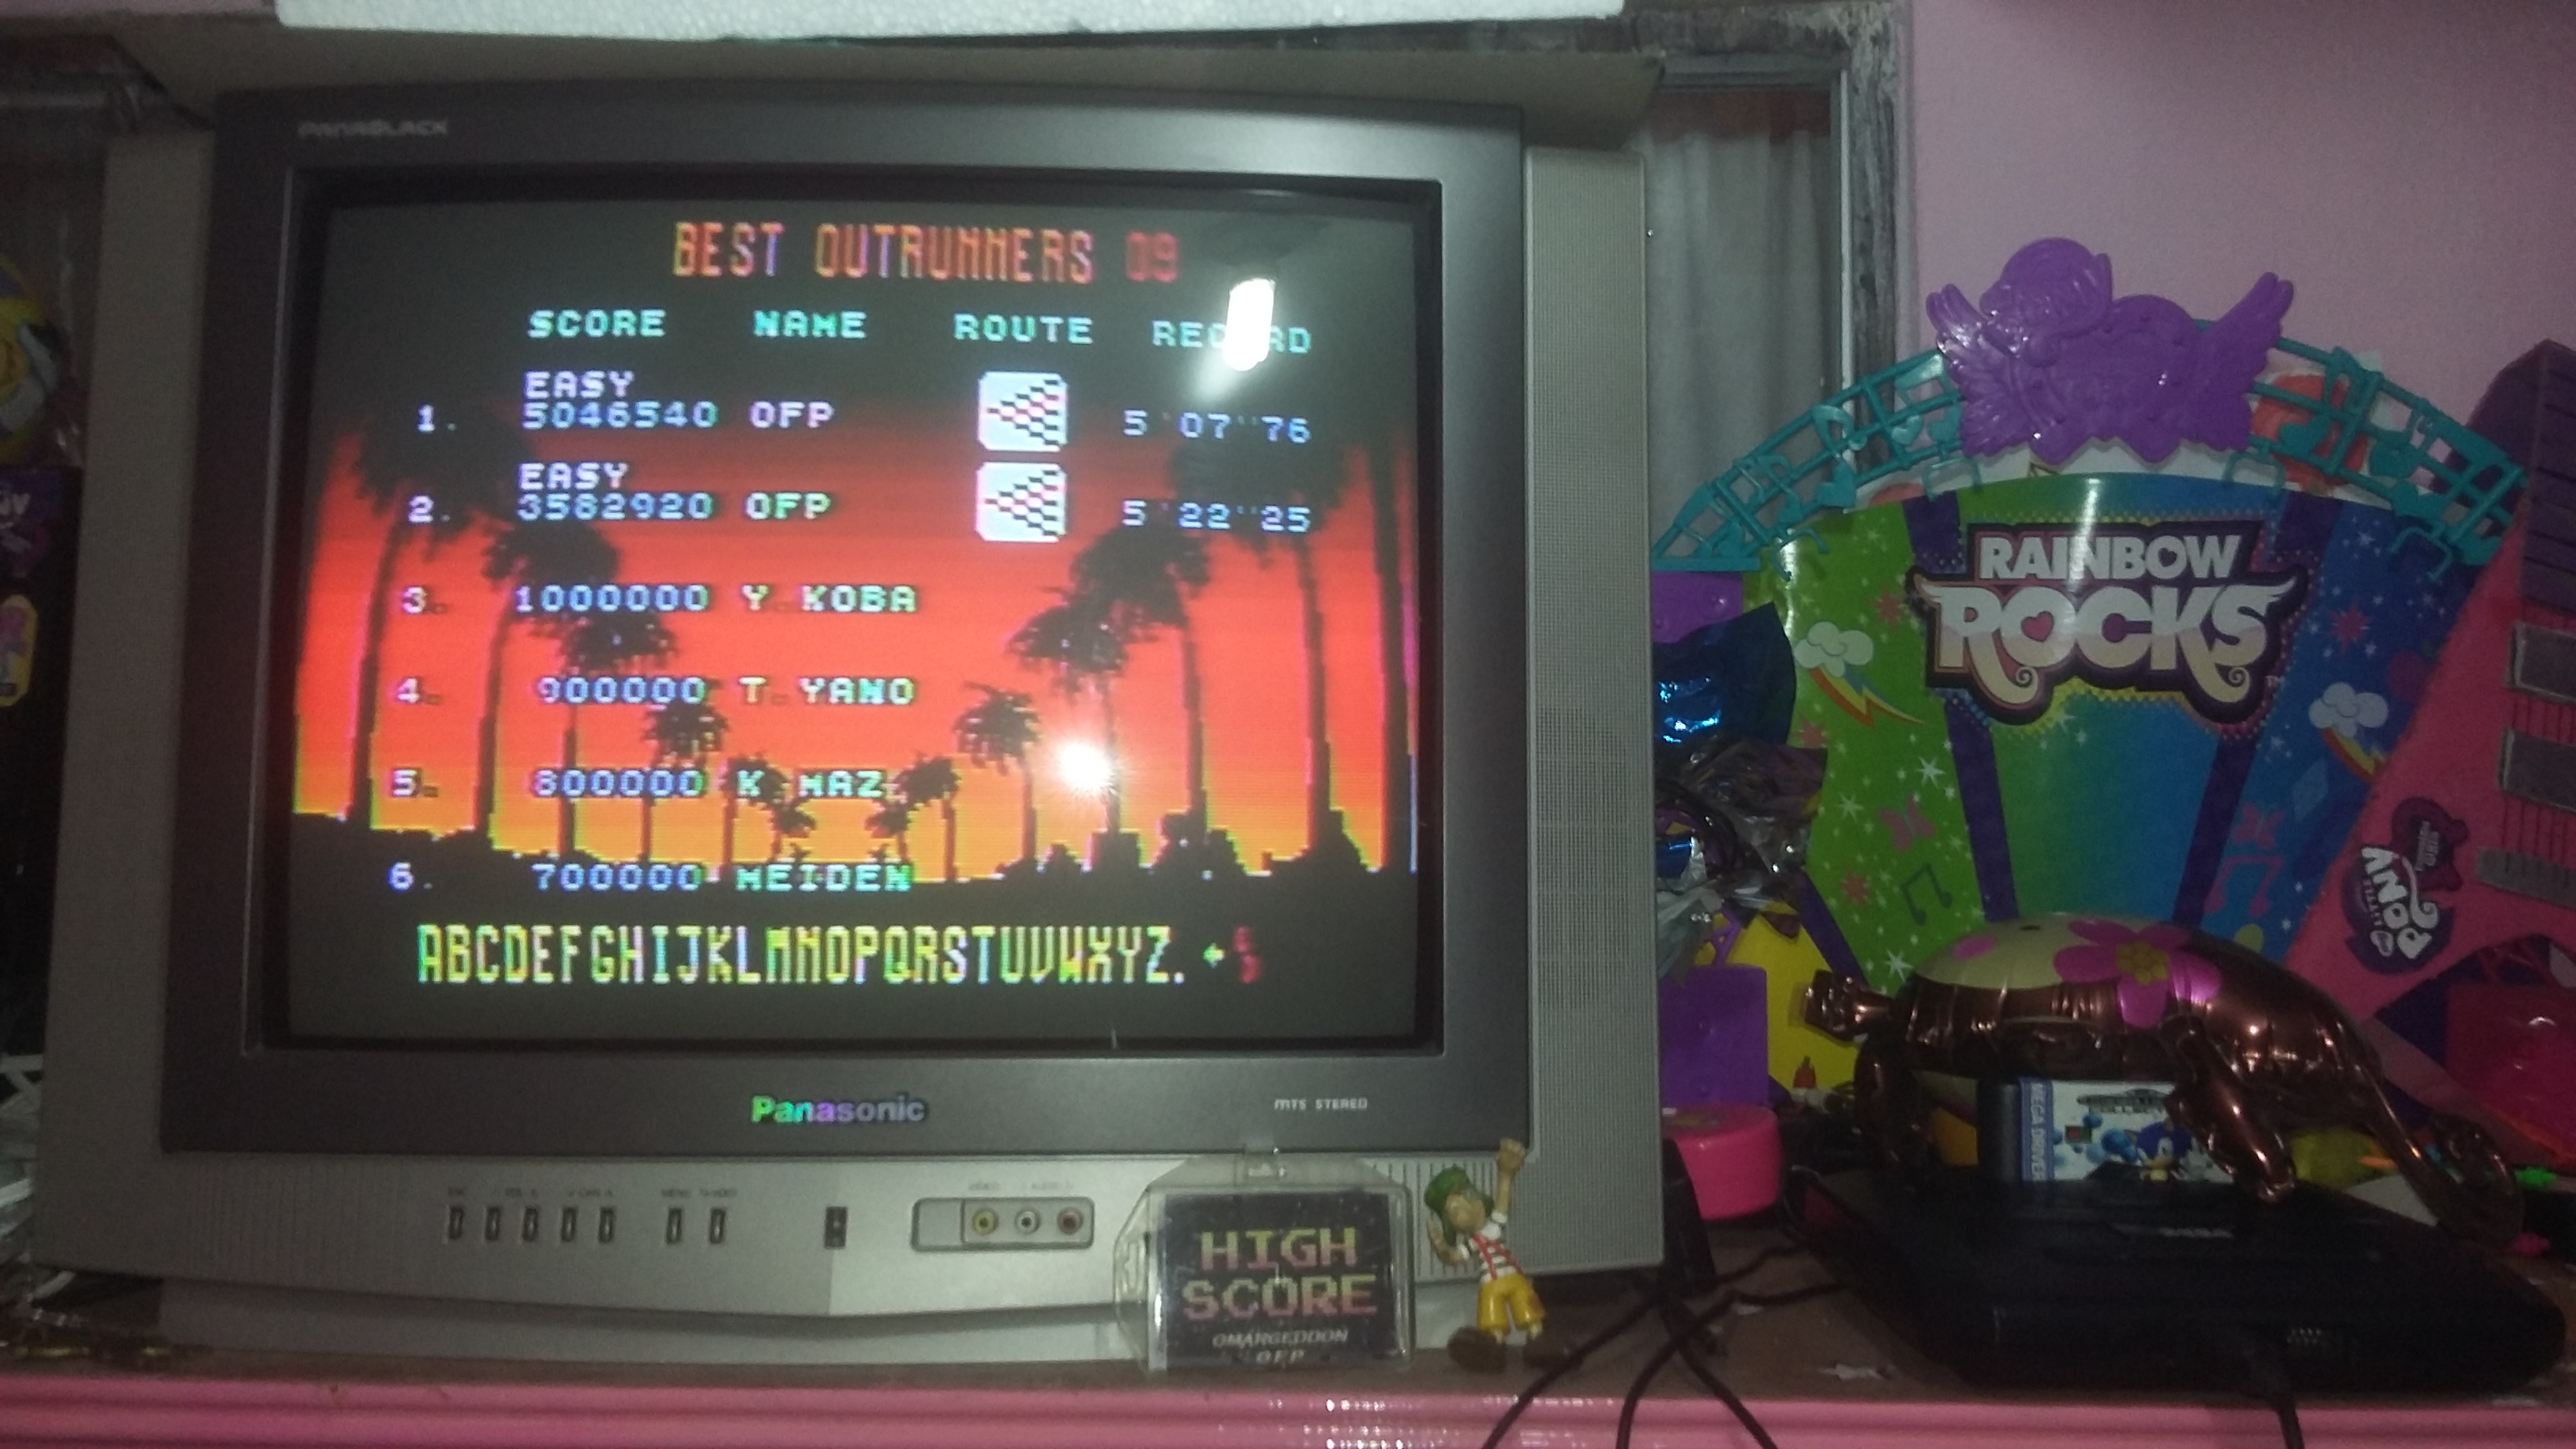 omargeddon: Outrun [Easy] (Sega Genesis / MegaDrive) 5,046,540 points on 2018-08-11 01:06:05